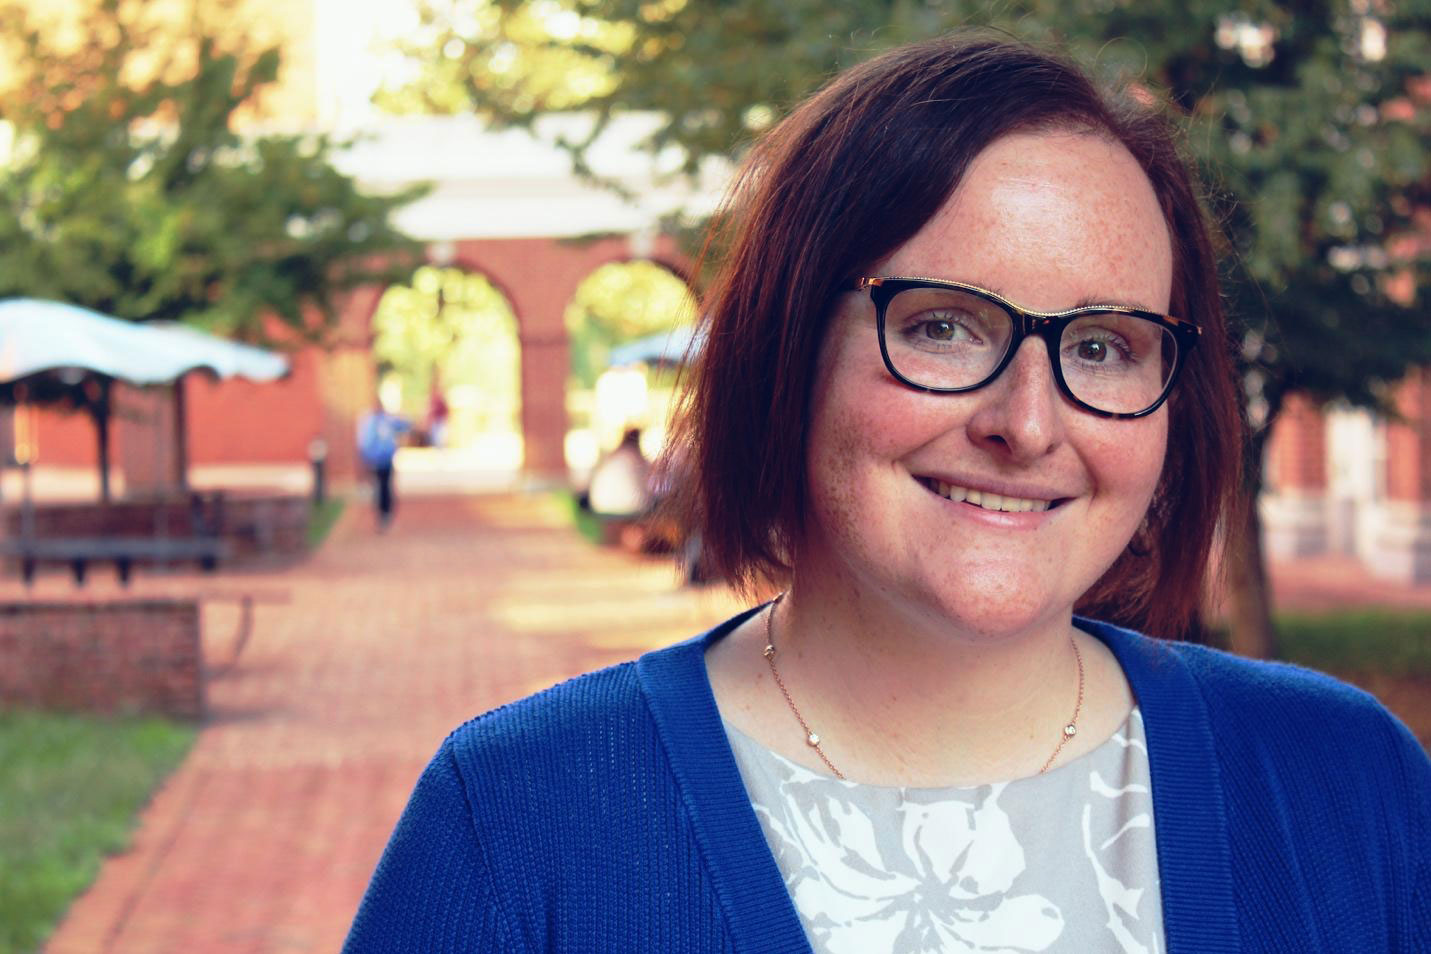 Stephanie Wormington's research at the Curry School of Education and Human Development focuses on what drives student motivation in school.